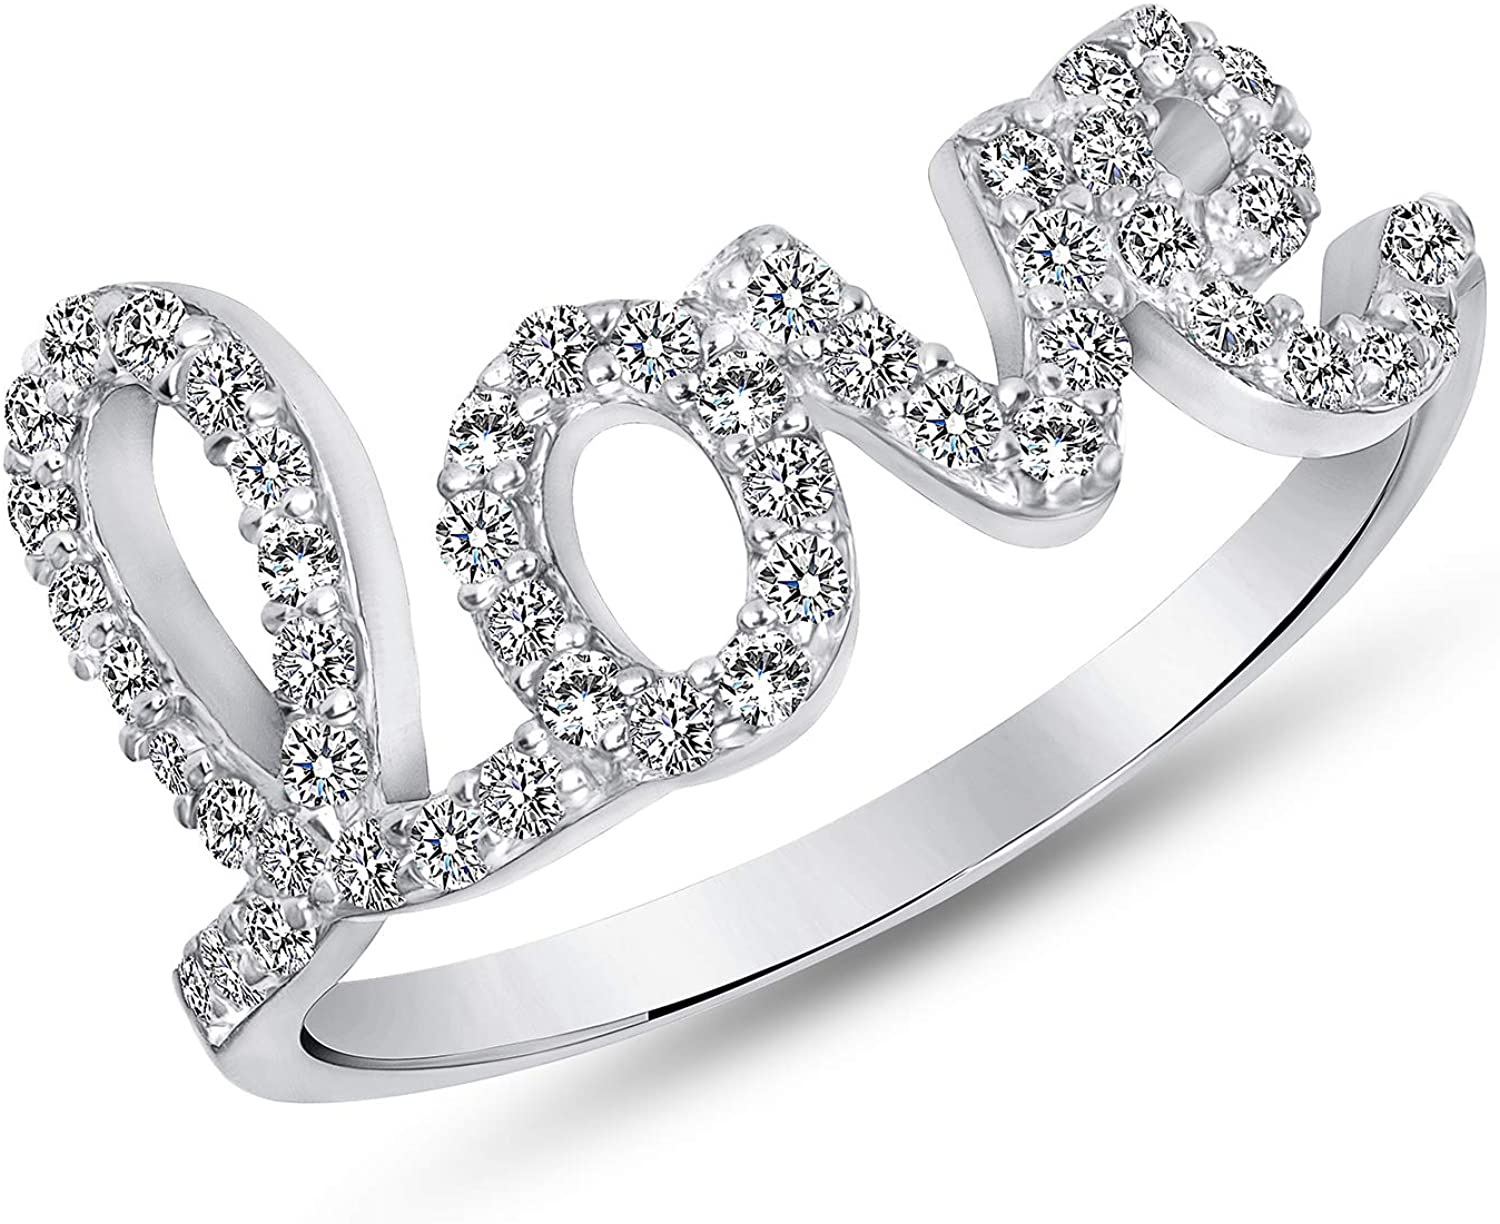 Jewelry by Debbie 925 Sterling Silver Love Ring Cz Pave Rhodium Plated